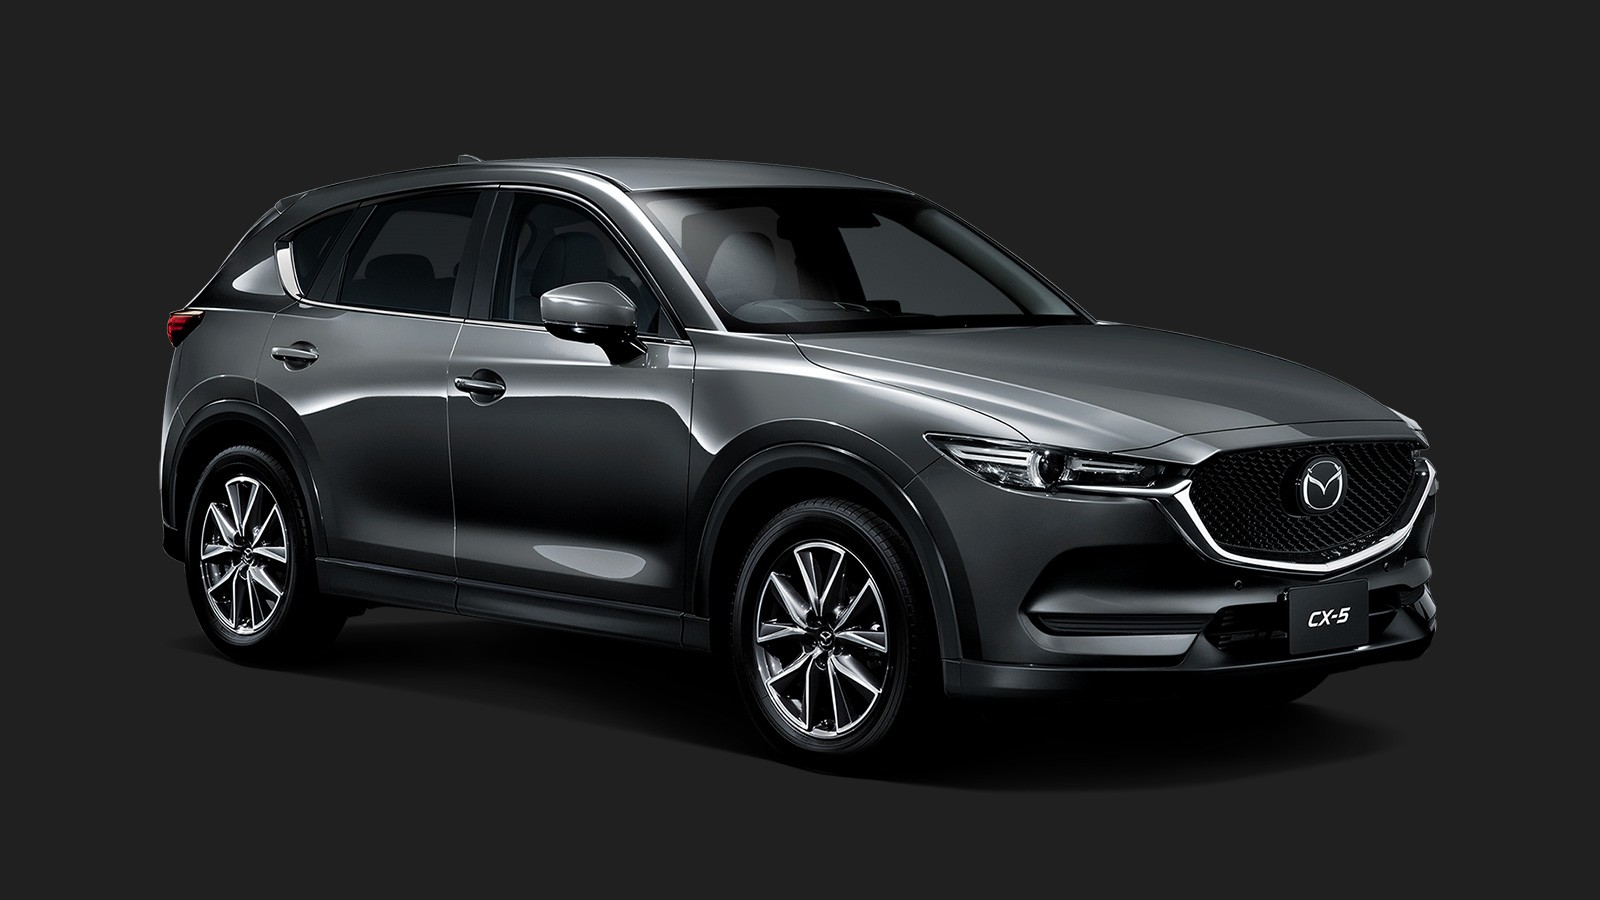 2017 mazda cx 5 getting 7 seat version in japan autoevolution. Black Bedroom Furniture Sets. Home Design Ideas